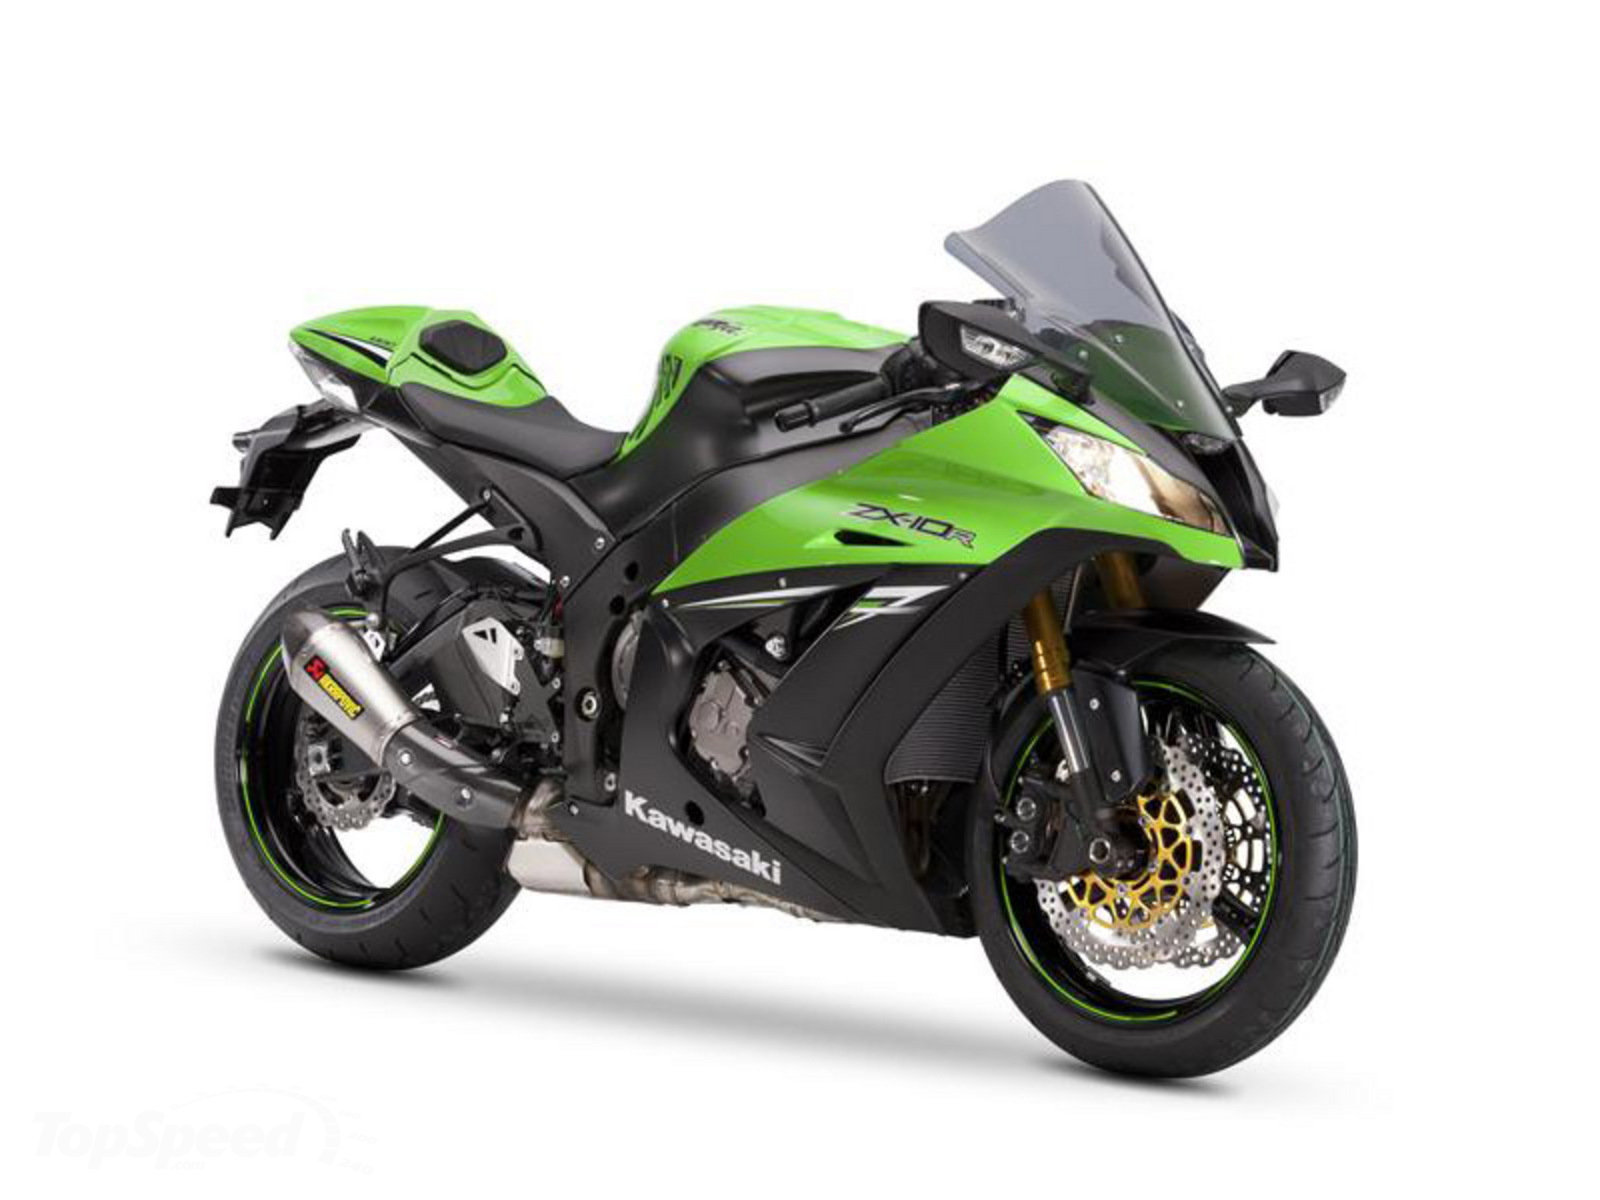 Kawasaki Ninja R Price Top Speed